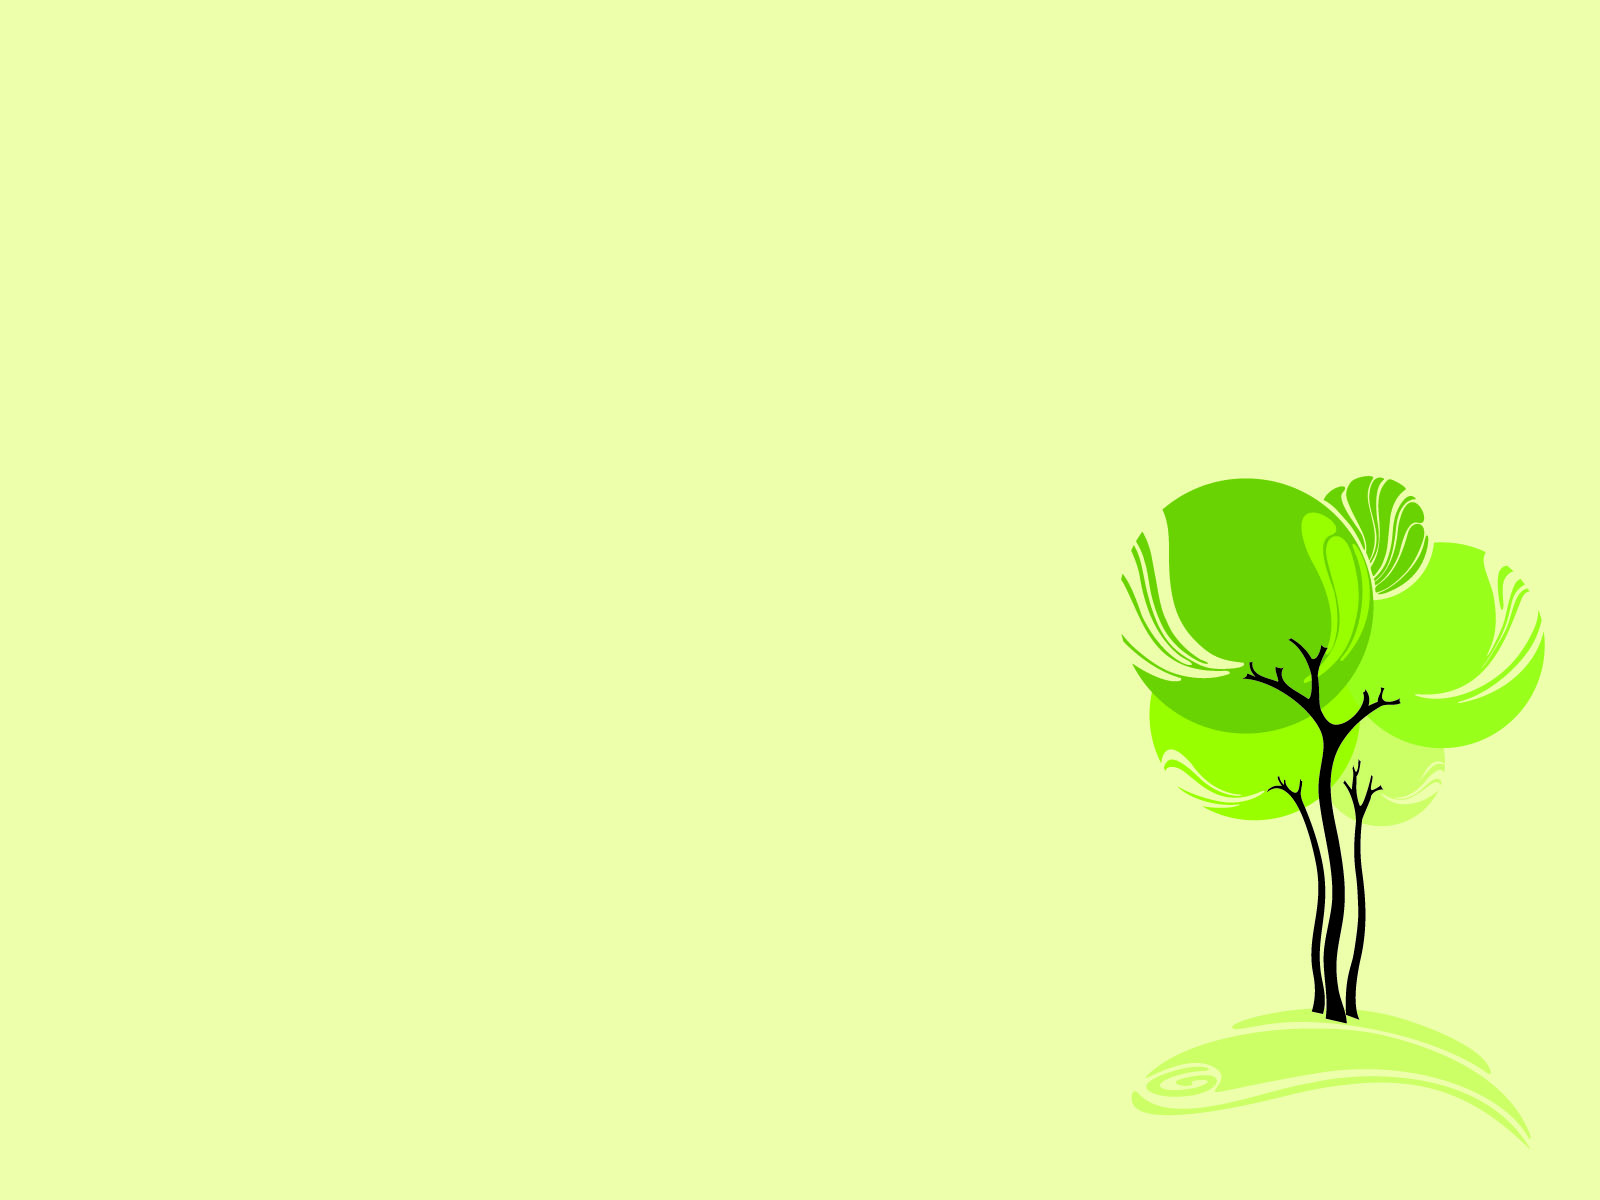 green design tree ppt backgrounds - nature templates - ppt grounds, Powerpoint templates